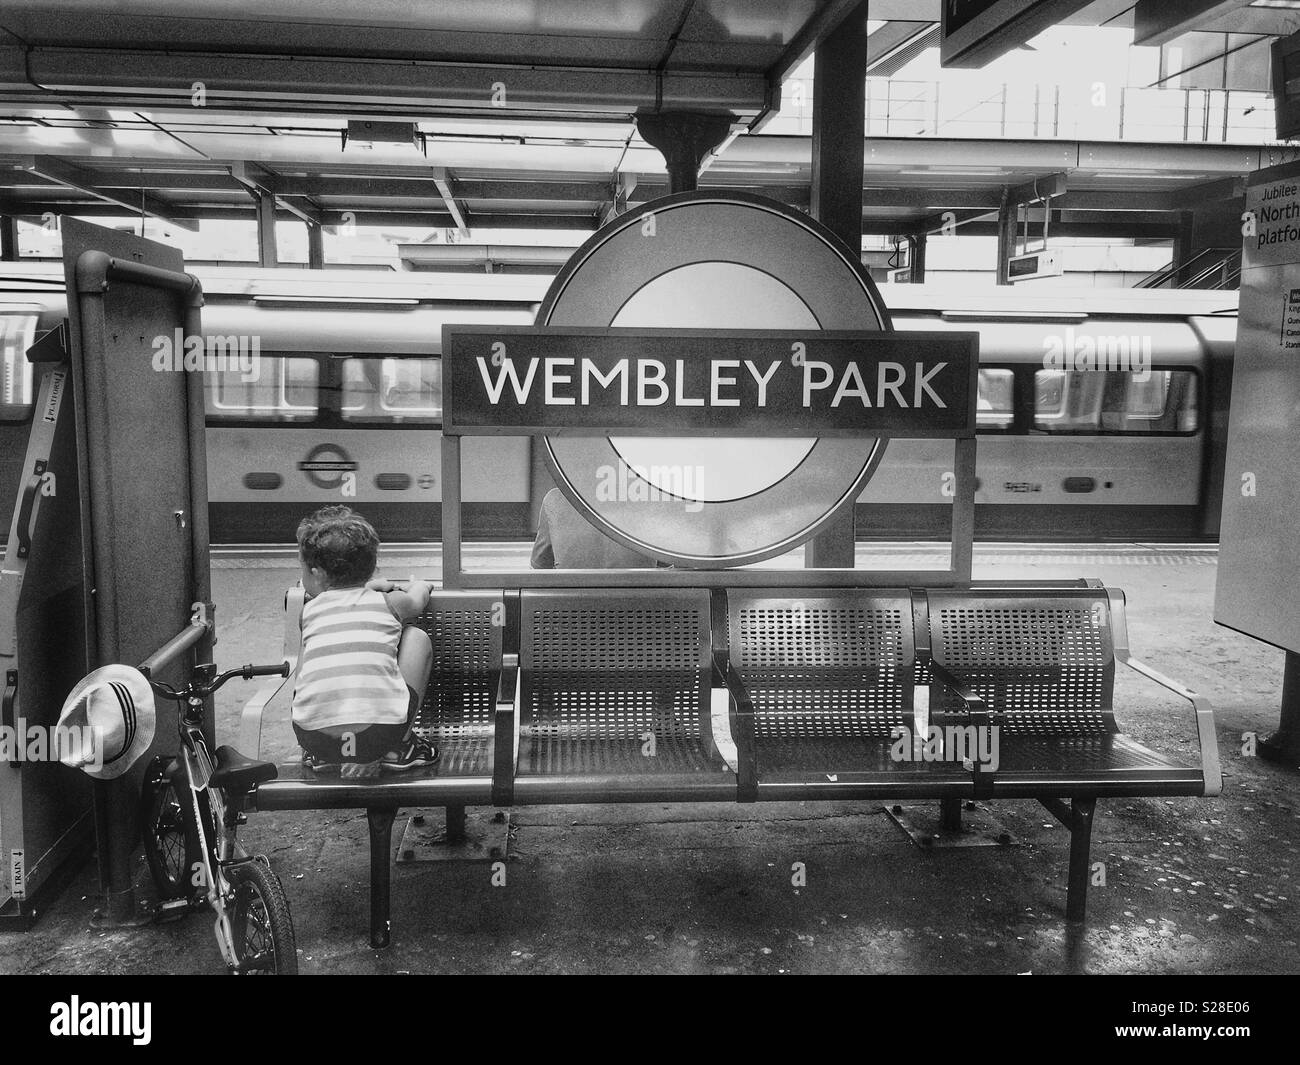 A boy with his bike looking at the trains at Wembley Park station, London - Stock Image